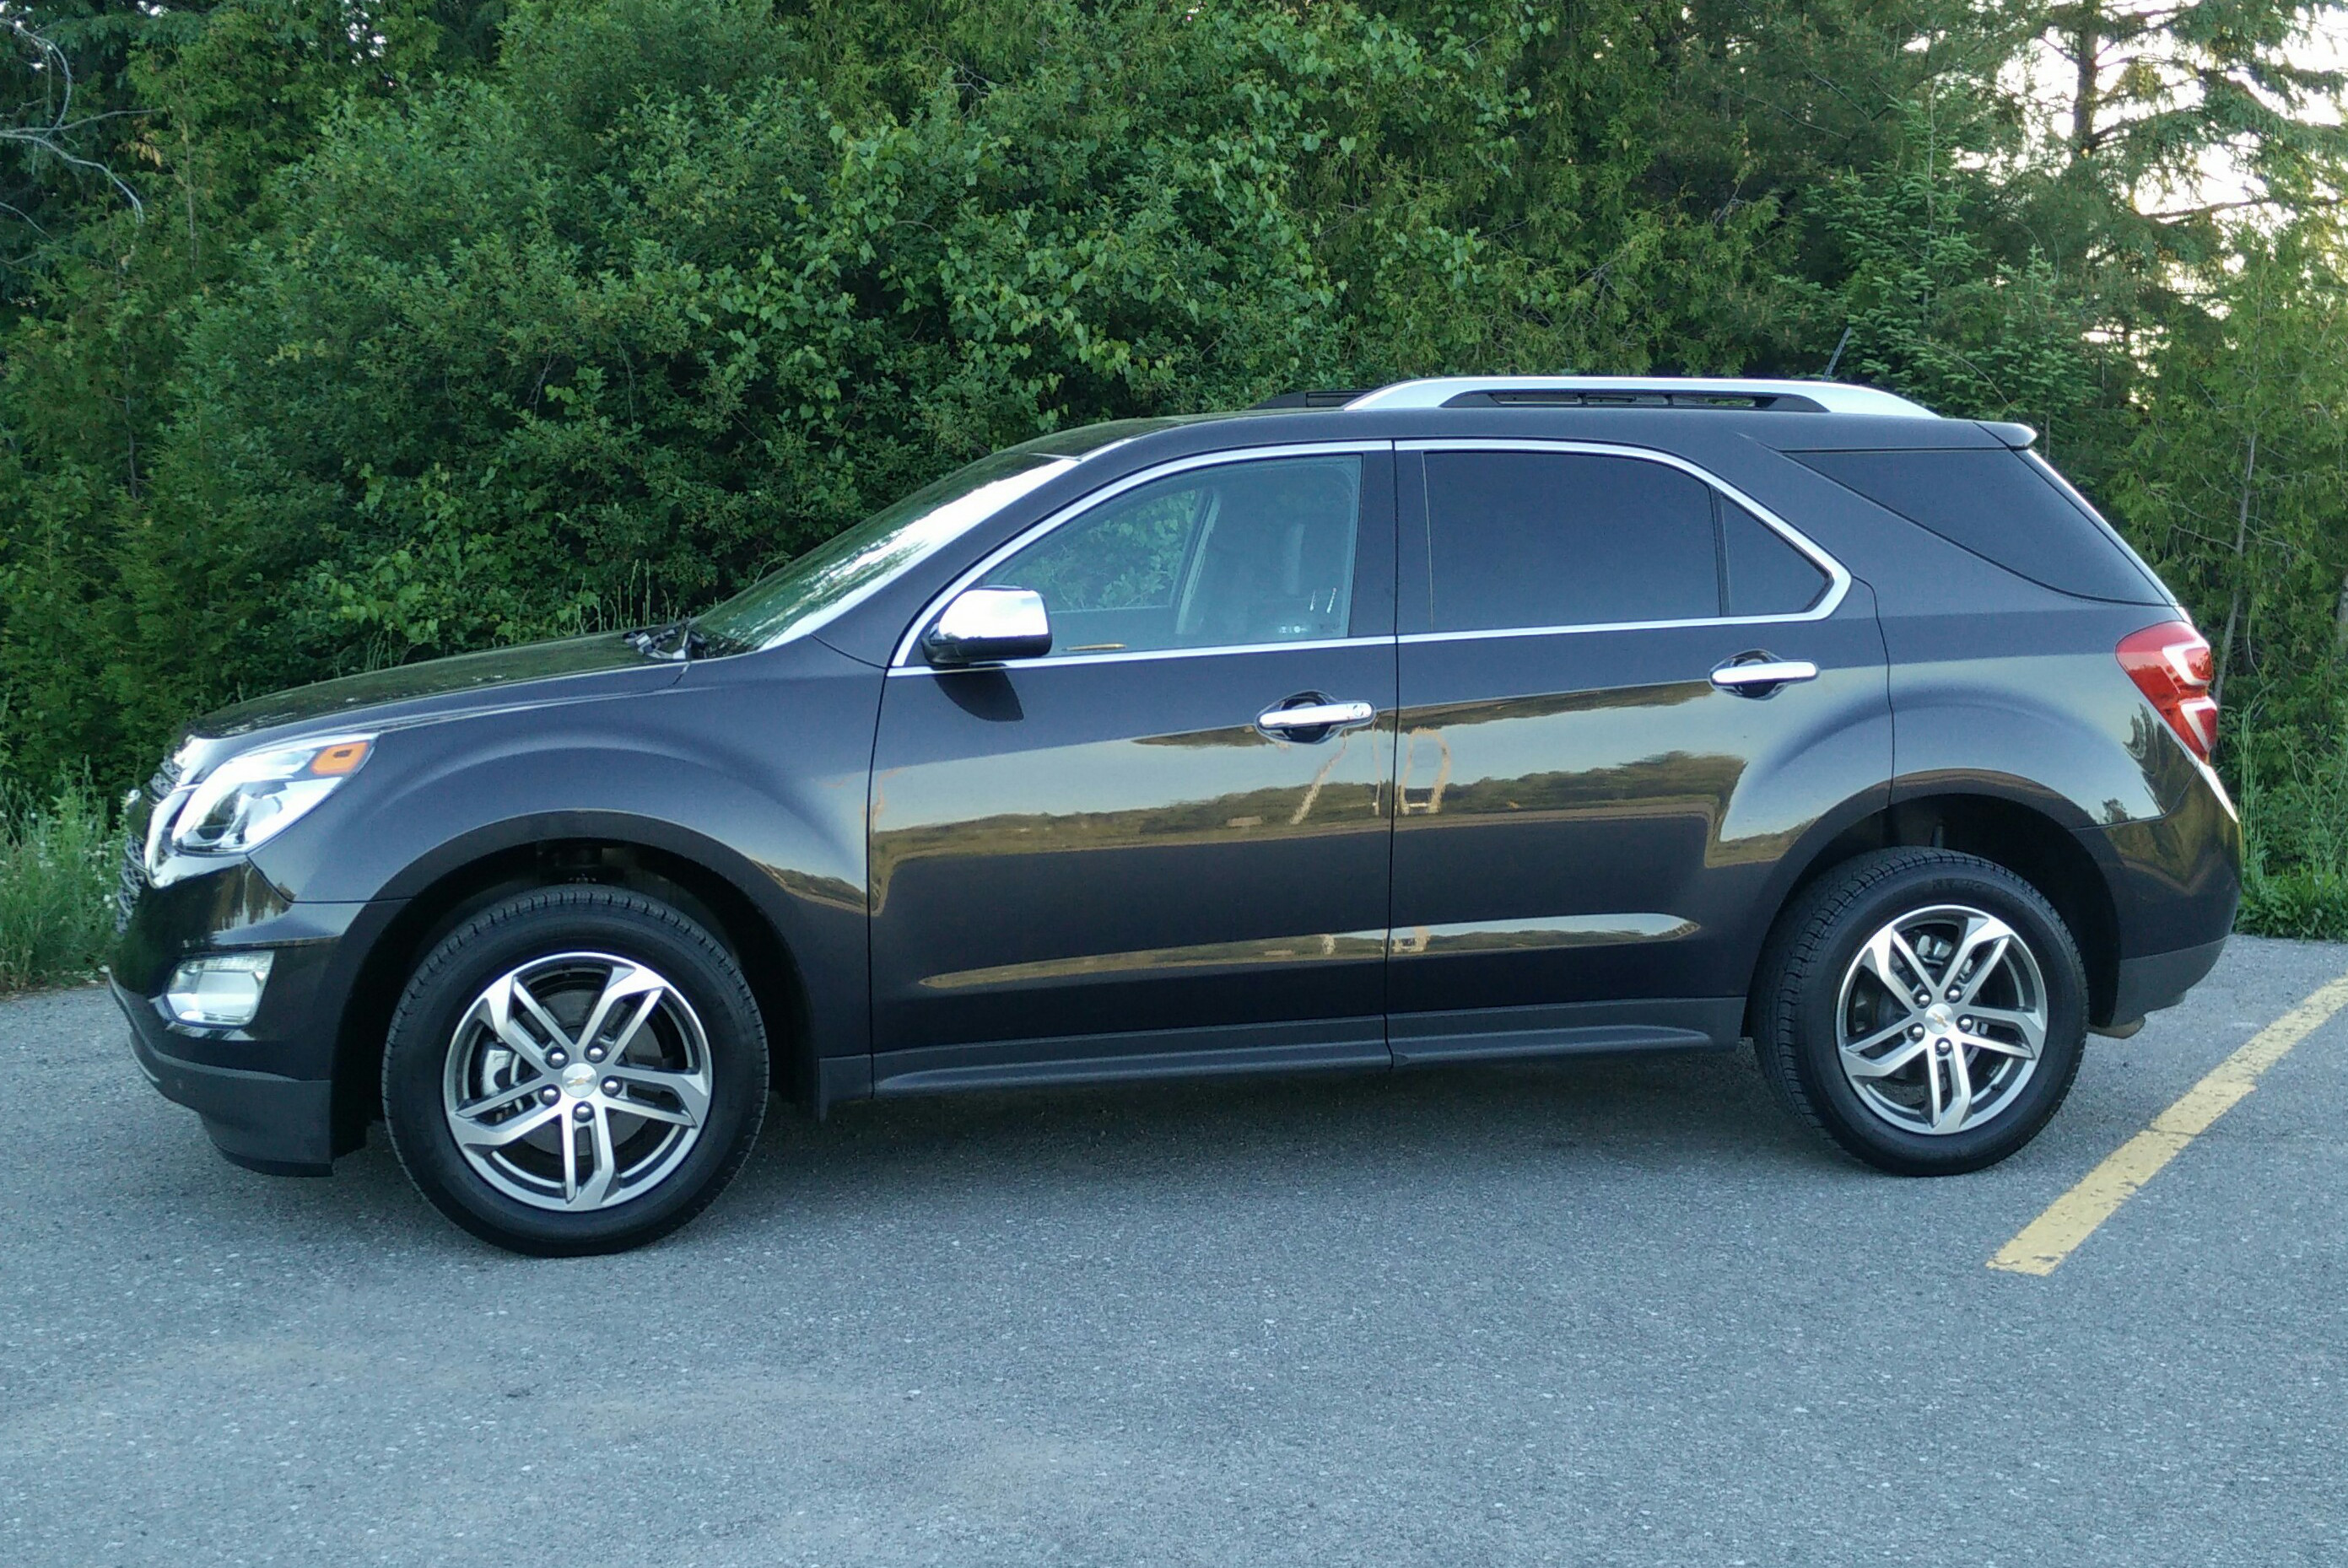 2014 chevrolet equinox male models picture. Black Bedroom Furniture Sets. Home Design Ideas